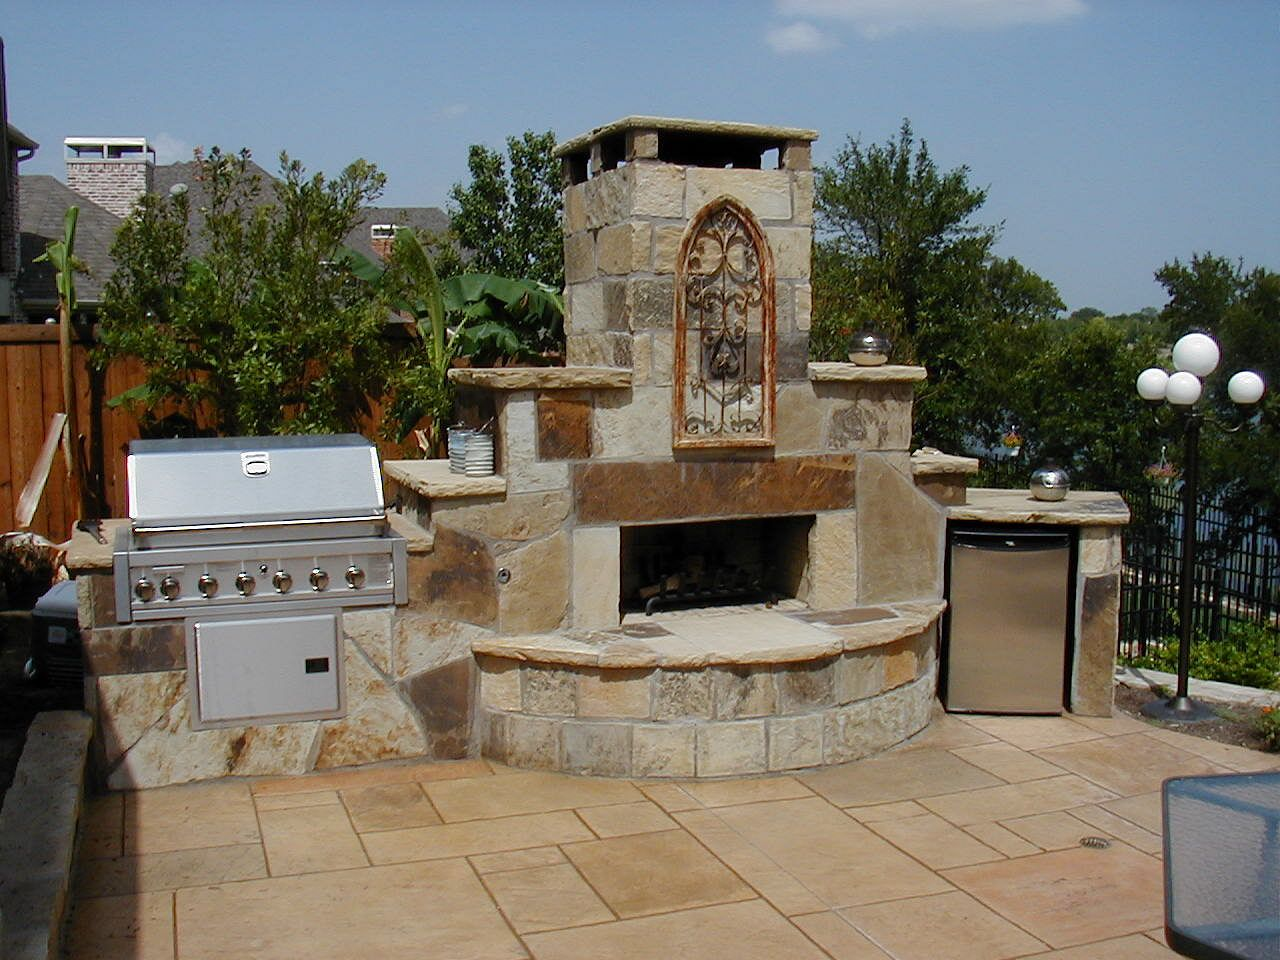 tulsa outdoor fireplace outdoor grill area grill area and gas bbq